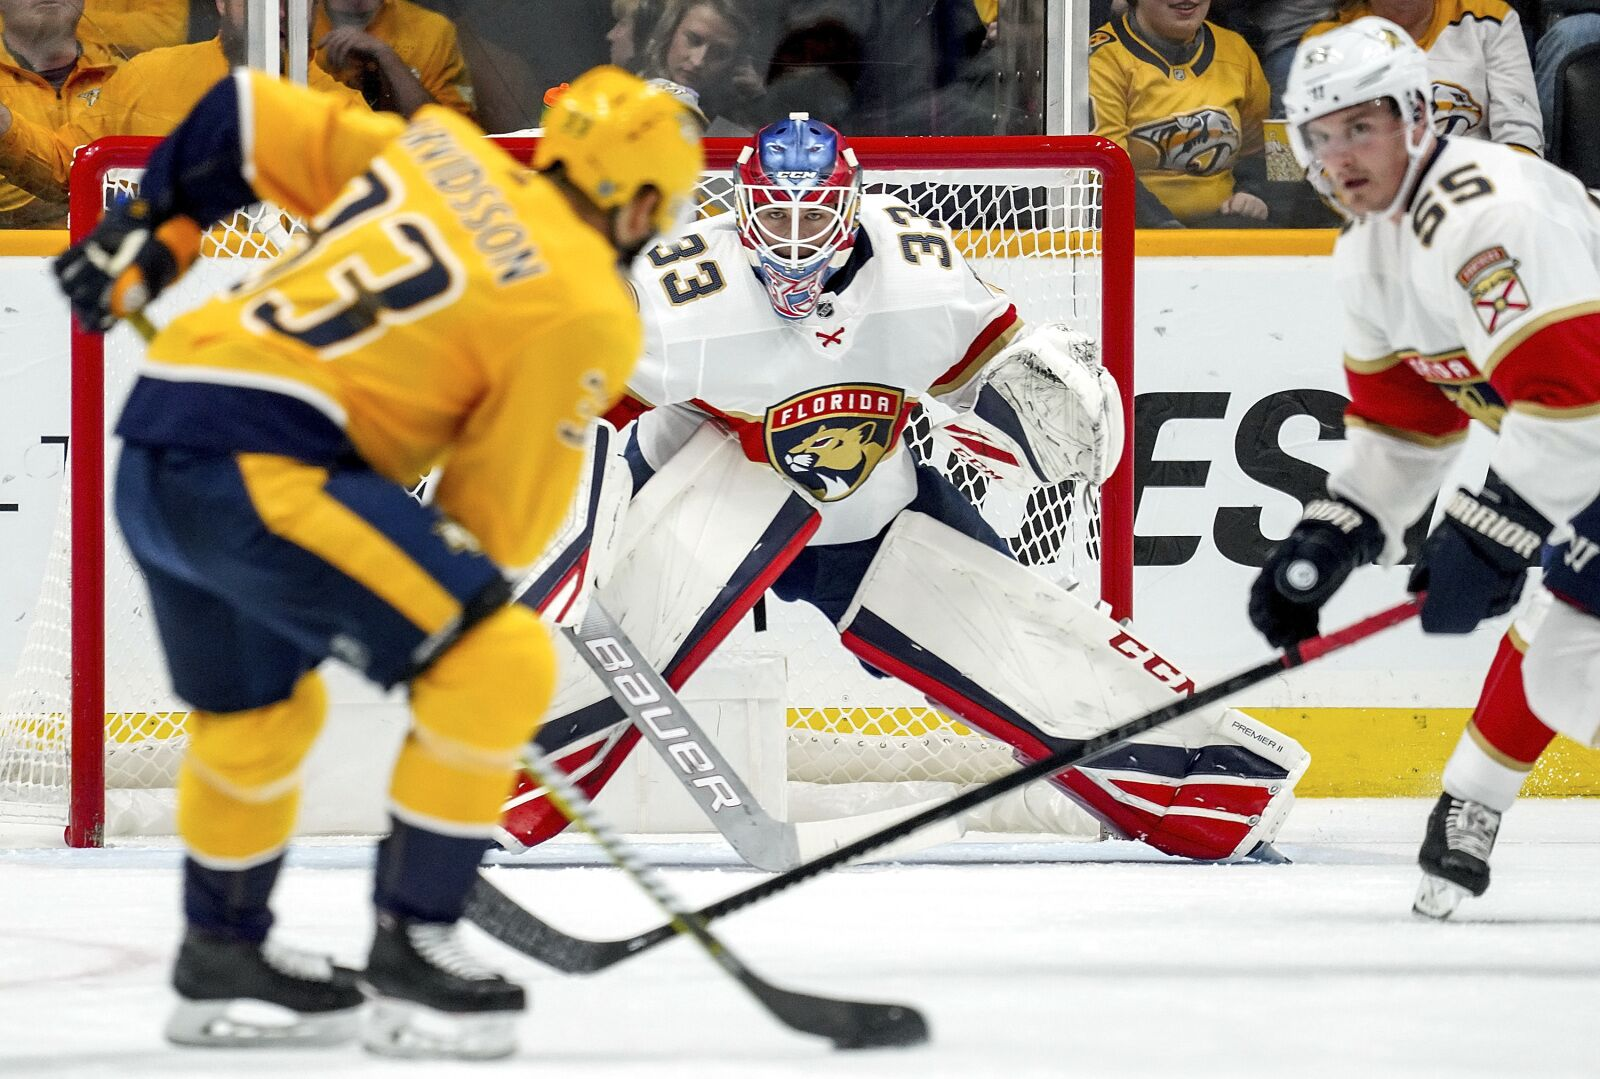 Florida Panthers Hold On, Montembeault Dazzles in 3-2 SO Win